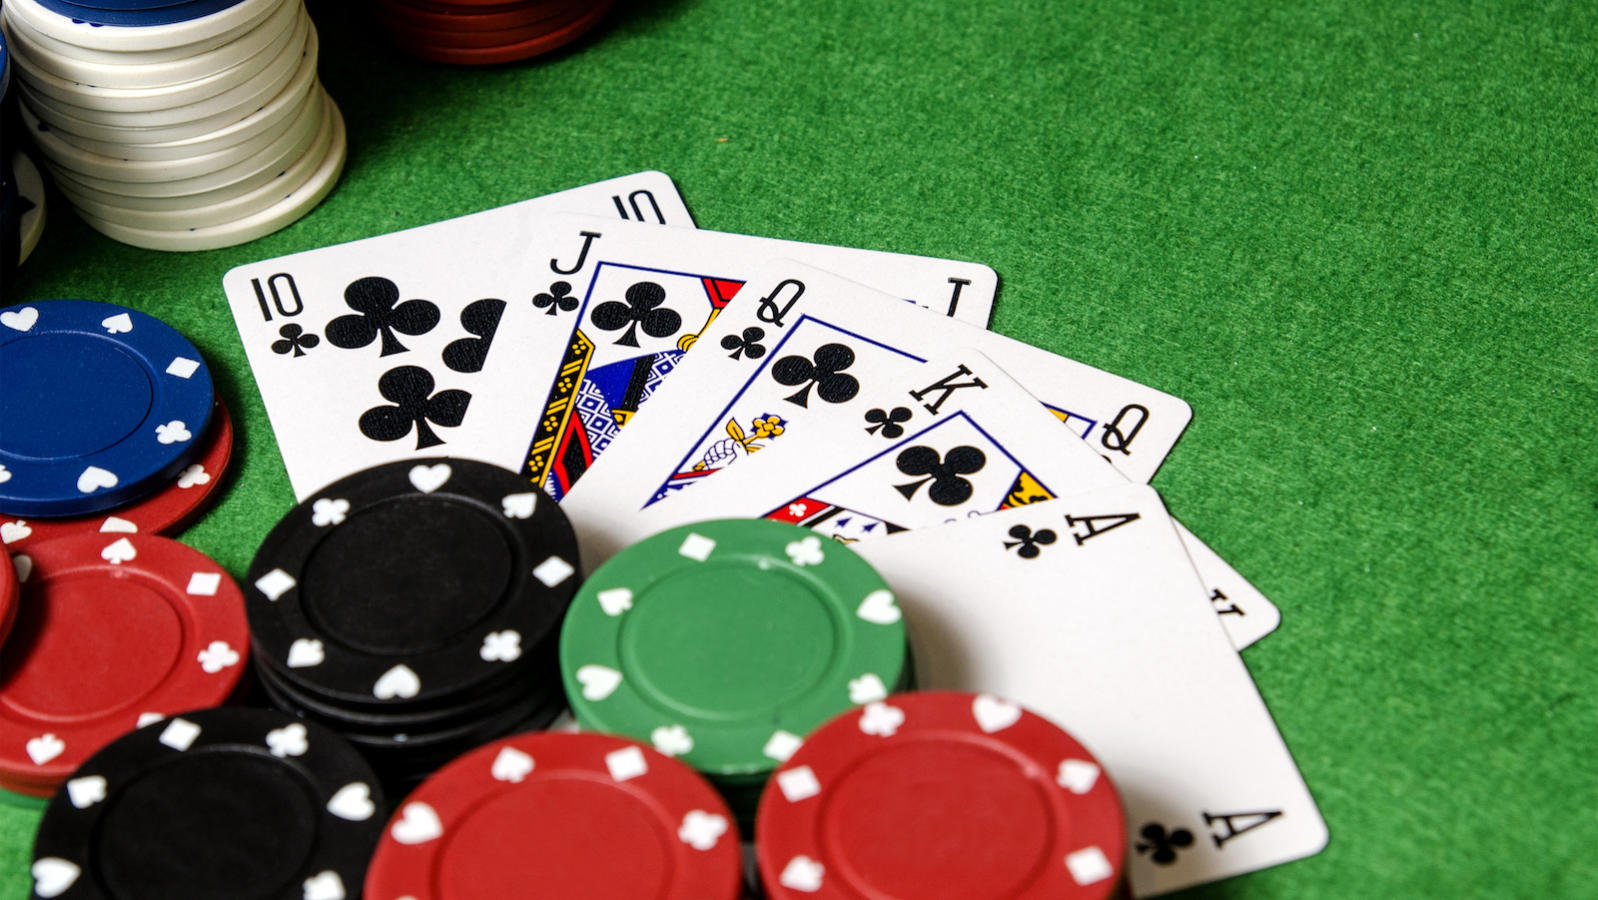 Links for enroll in poker games and latest versions